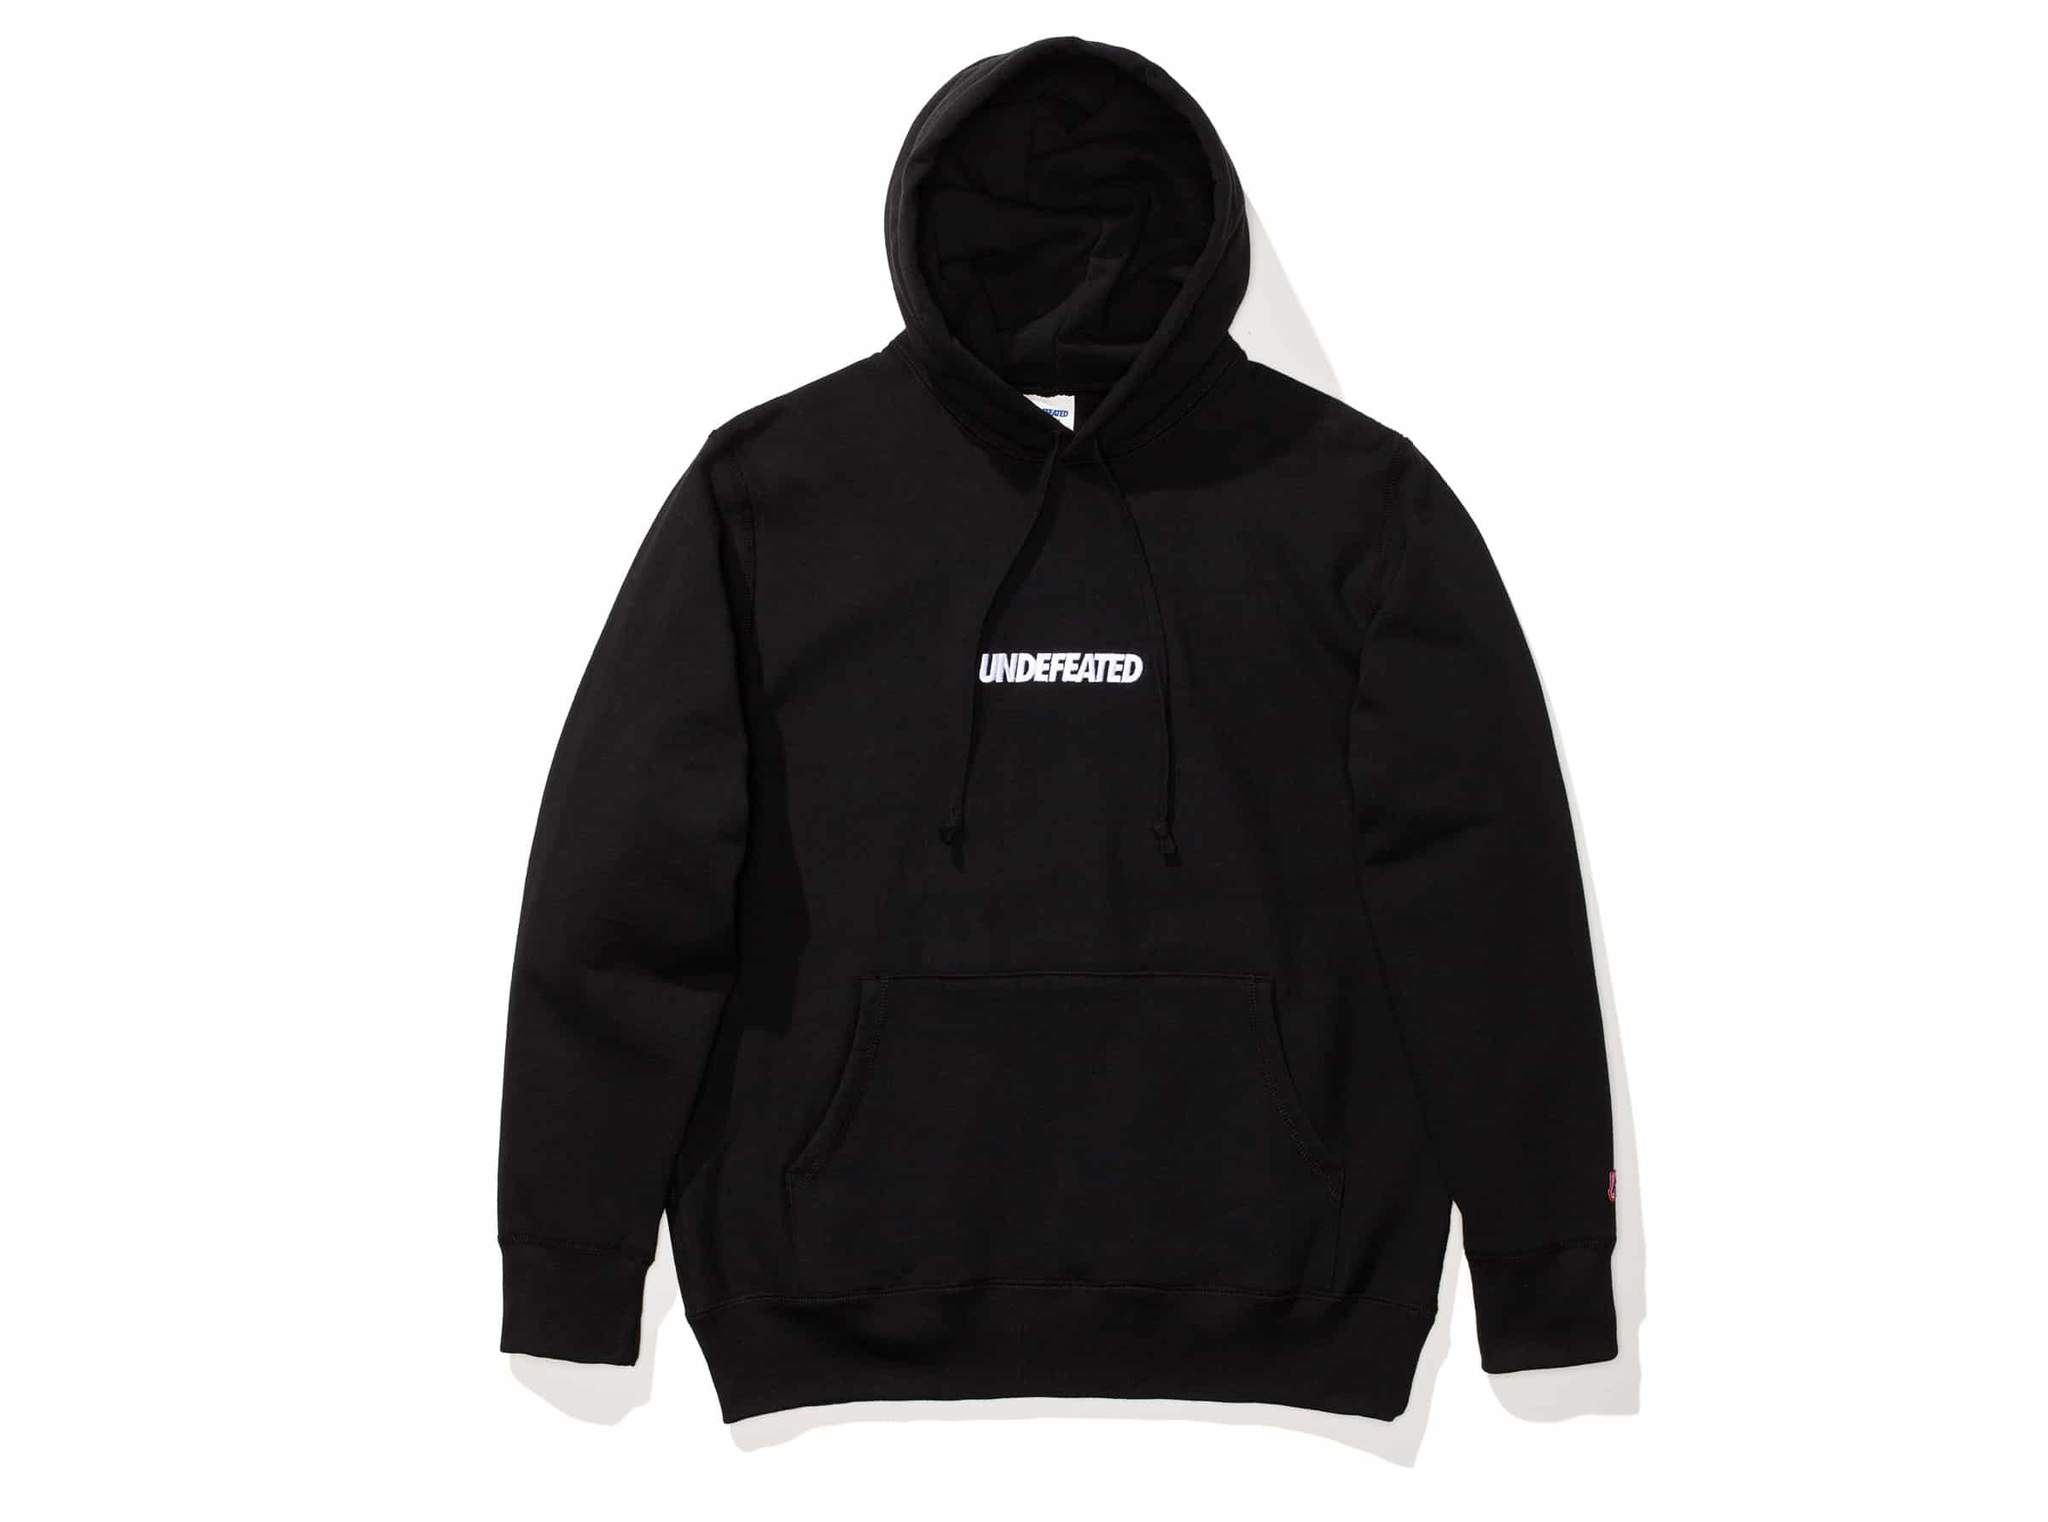 Undefeated Logo - UNDEFEATED LOGO PULLOVER HOODIE | Undefeated